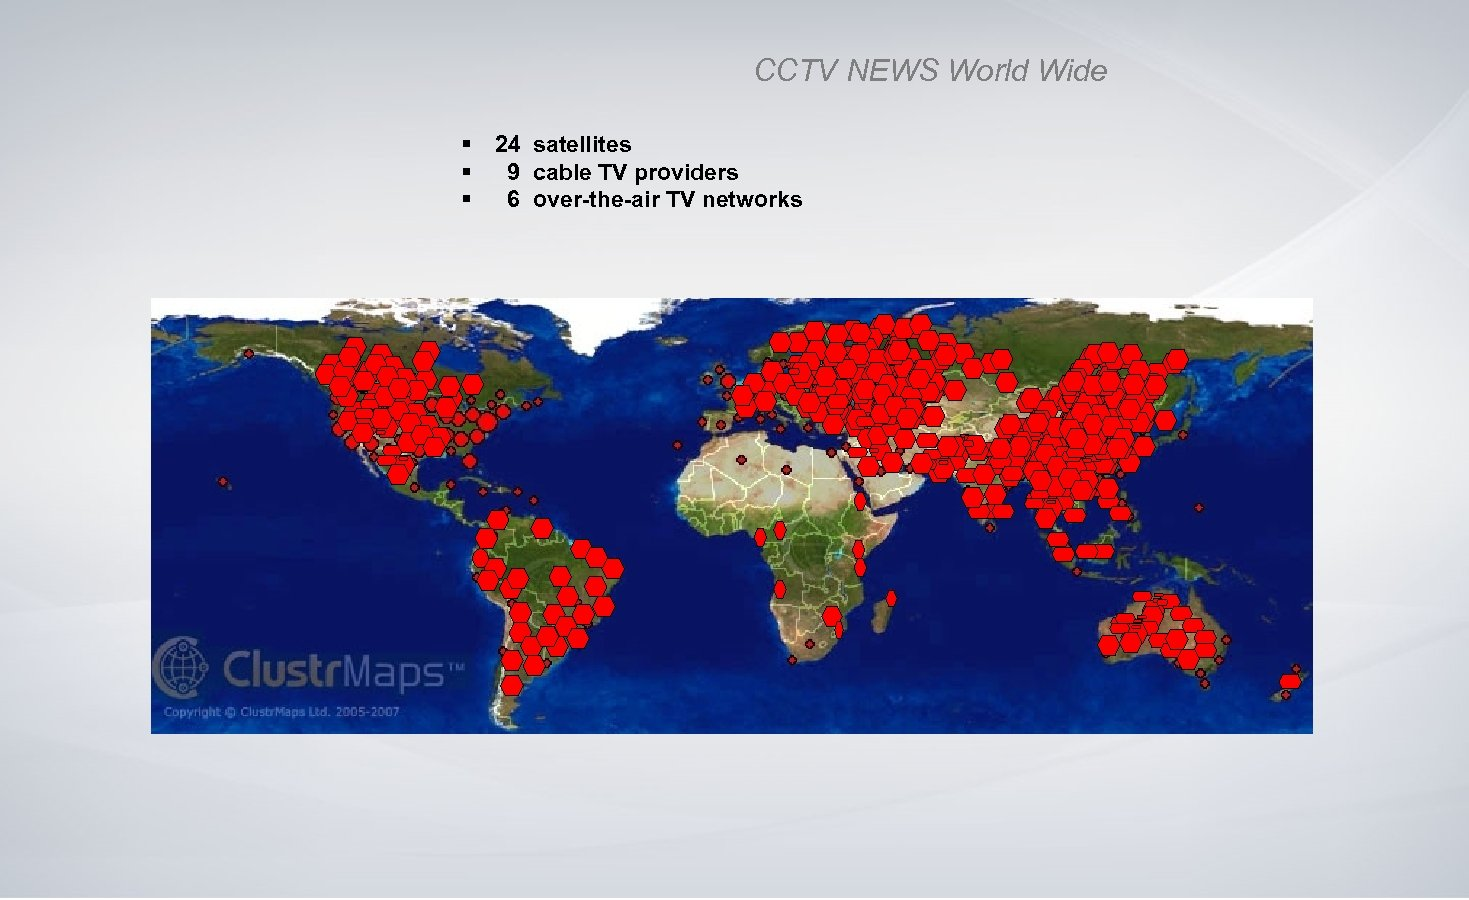 CCTV NEWS World Wide § 24 satellites § 9 cable TV providers § 6